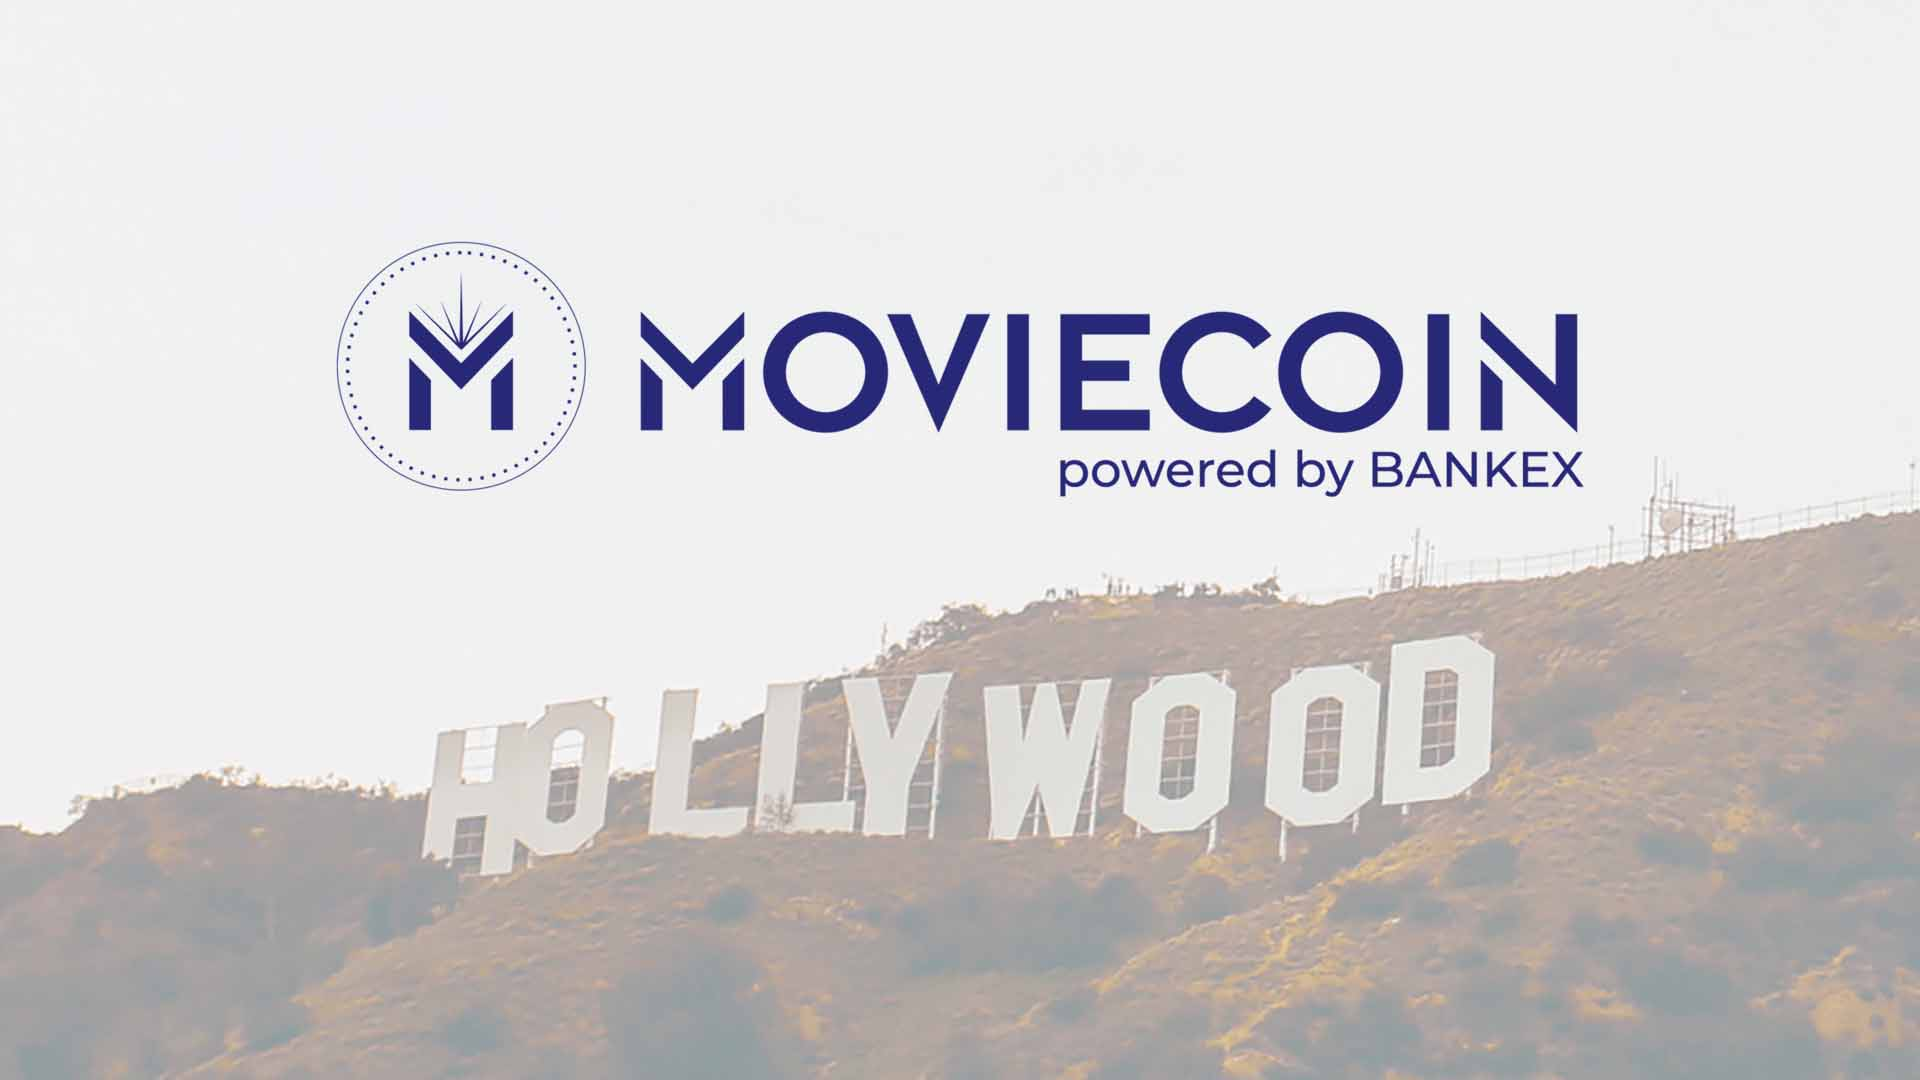 MovieCoin Appoints Six New Strategic Advisors